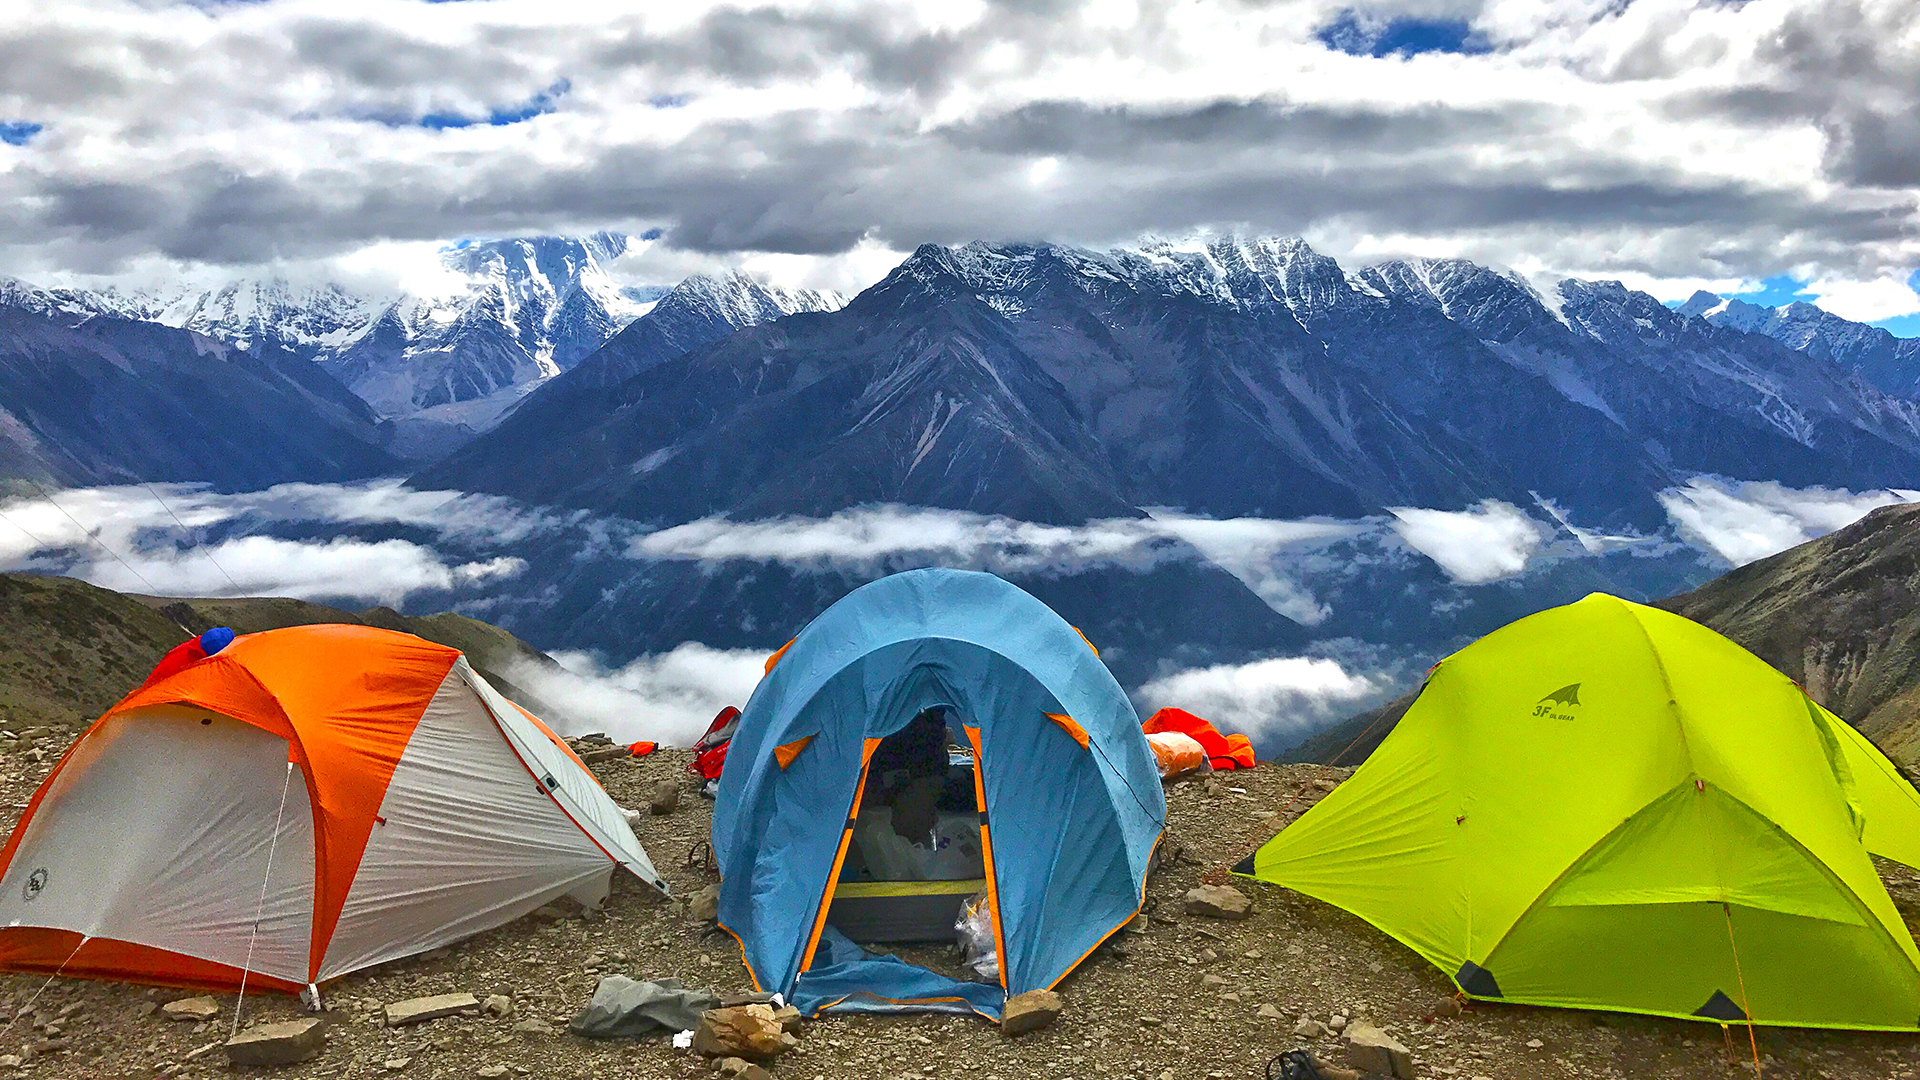 Camping near Mount Gongga. Virtual background to use on Zoom, Microsoft Teams, Skype, Google Meet, WebEx or any other compatible app.